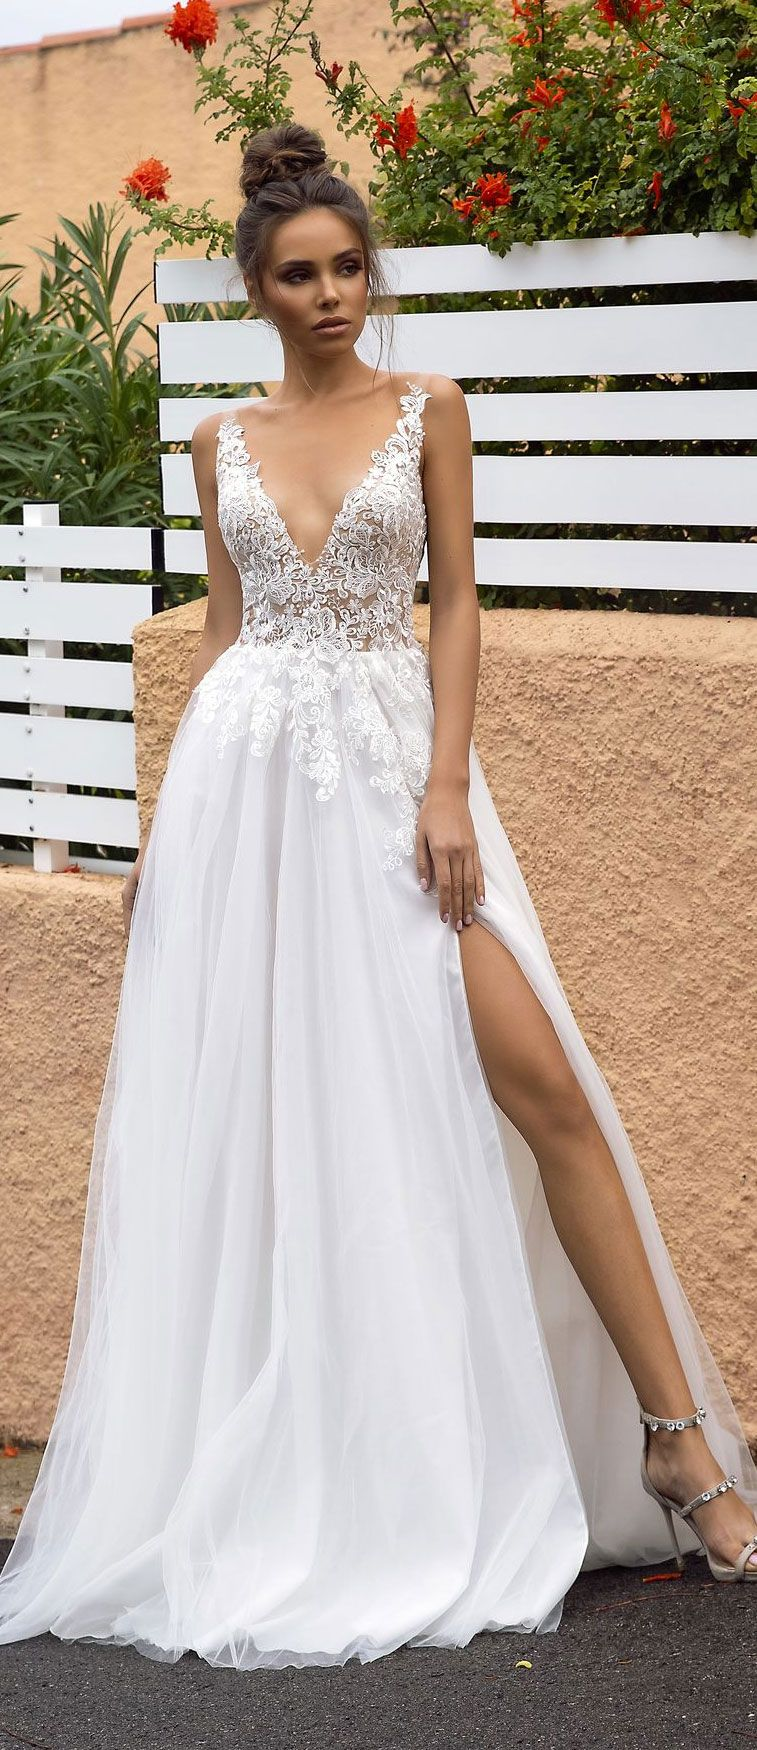 "Wedding Dress Inspiration – Tina Valerdi ""Passion by Tina"" Bridal Collection"